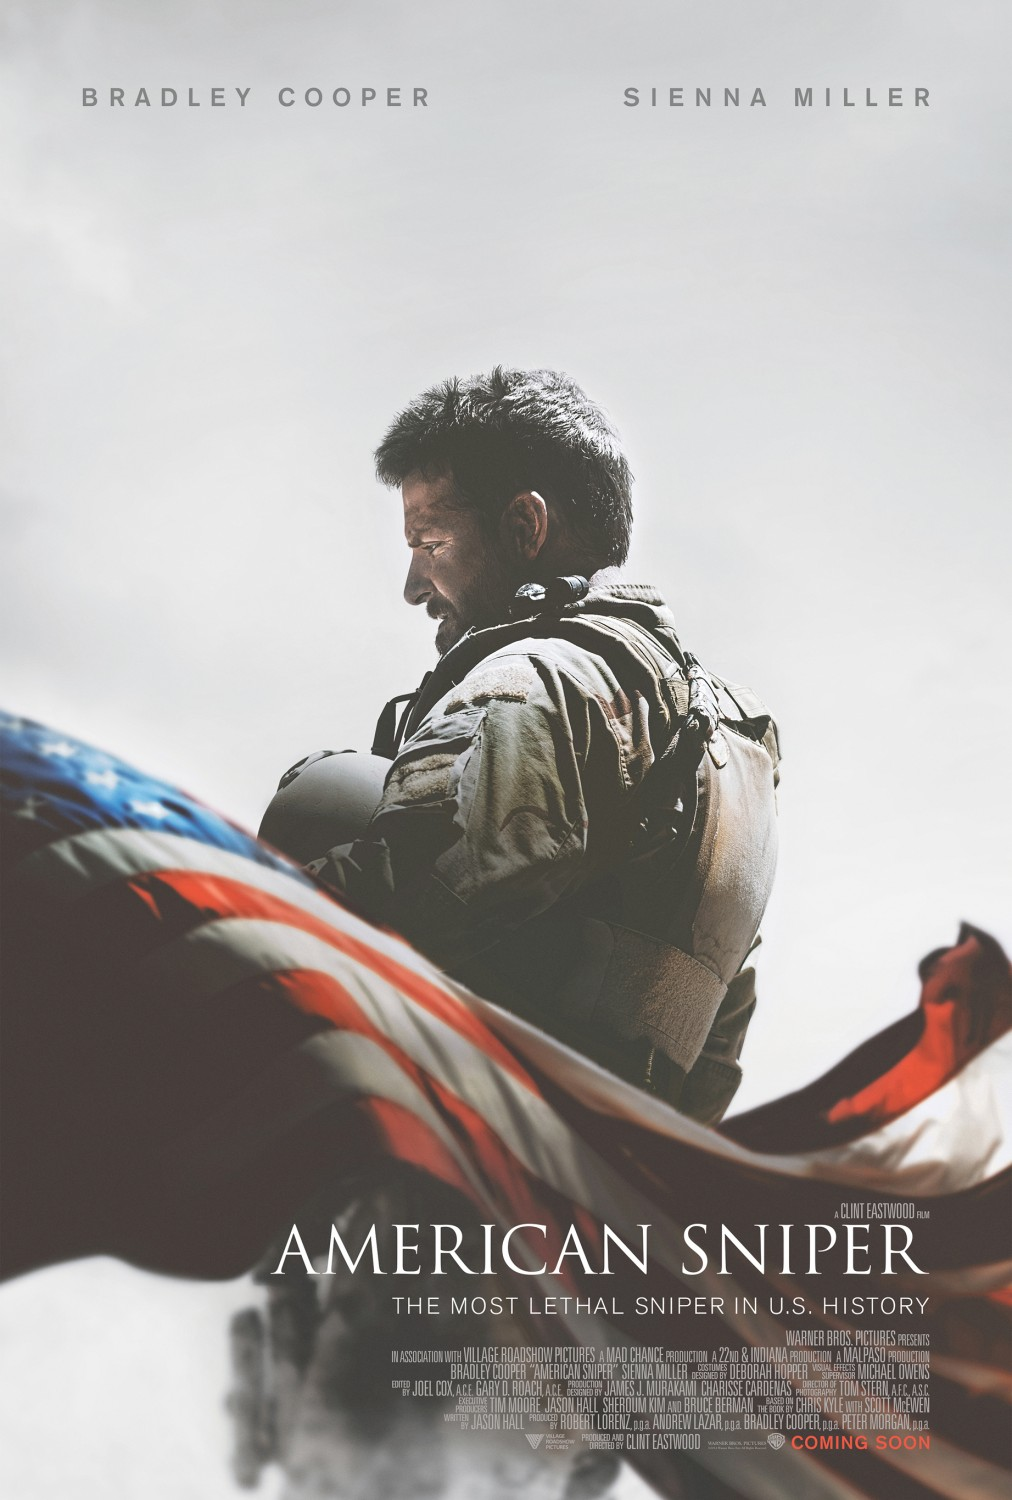 an analysis of the movie american sniper Rhetorical analysis american sniper trailer tuesday, february 10, 2015 american sniper movie trailer rhetorical analysis i can personally say that the movie trailer for american sniper did a very good job of appealing to my emotions and is a good representation of the movie.